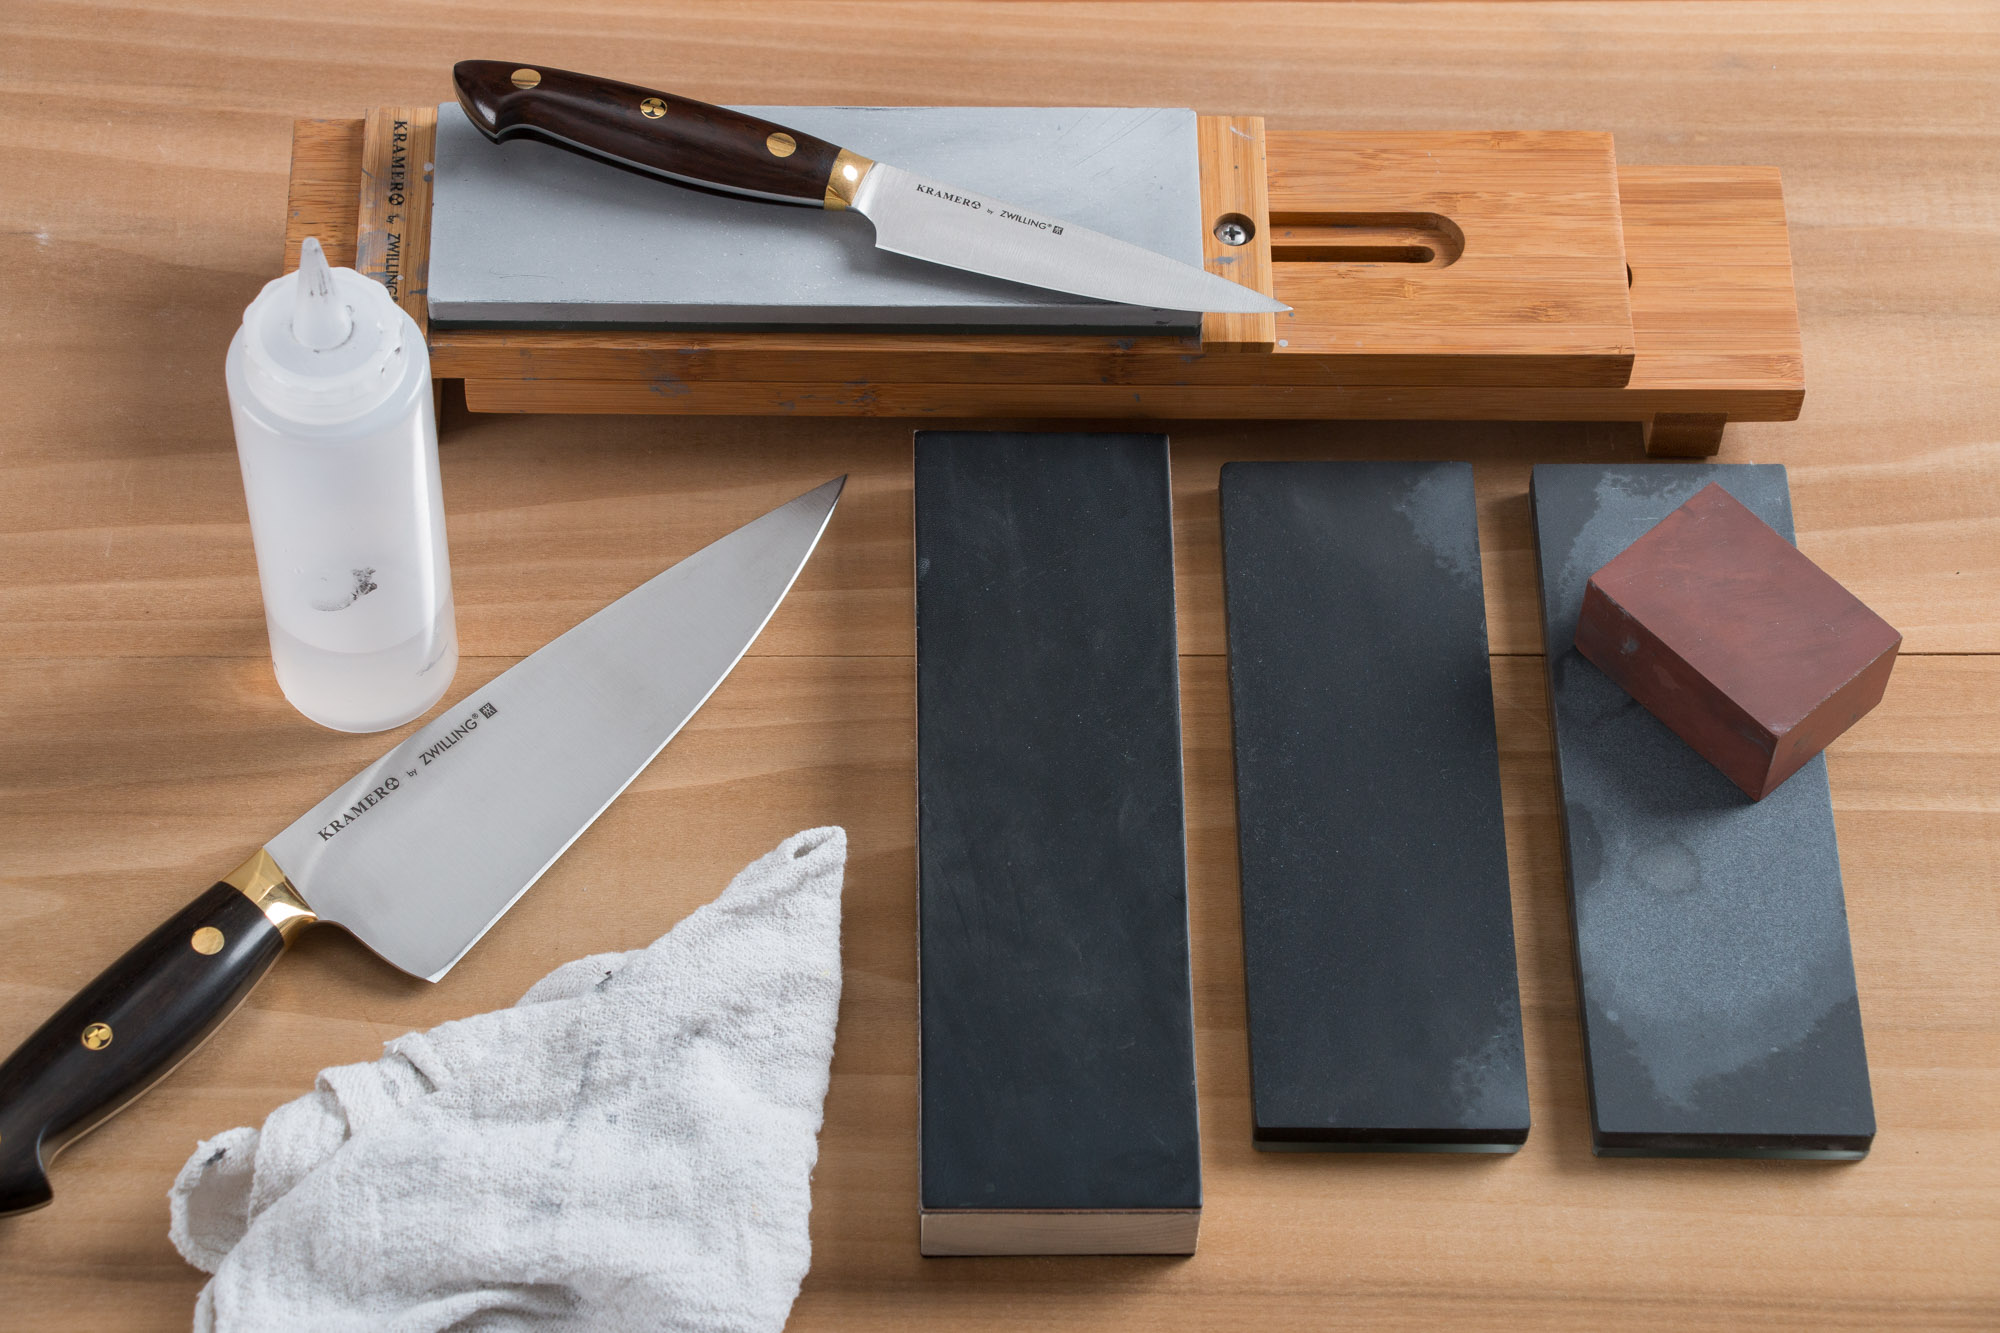 Stone and Strop Knife Sharpening 433 hay st,, Fayetteville